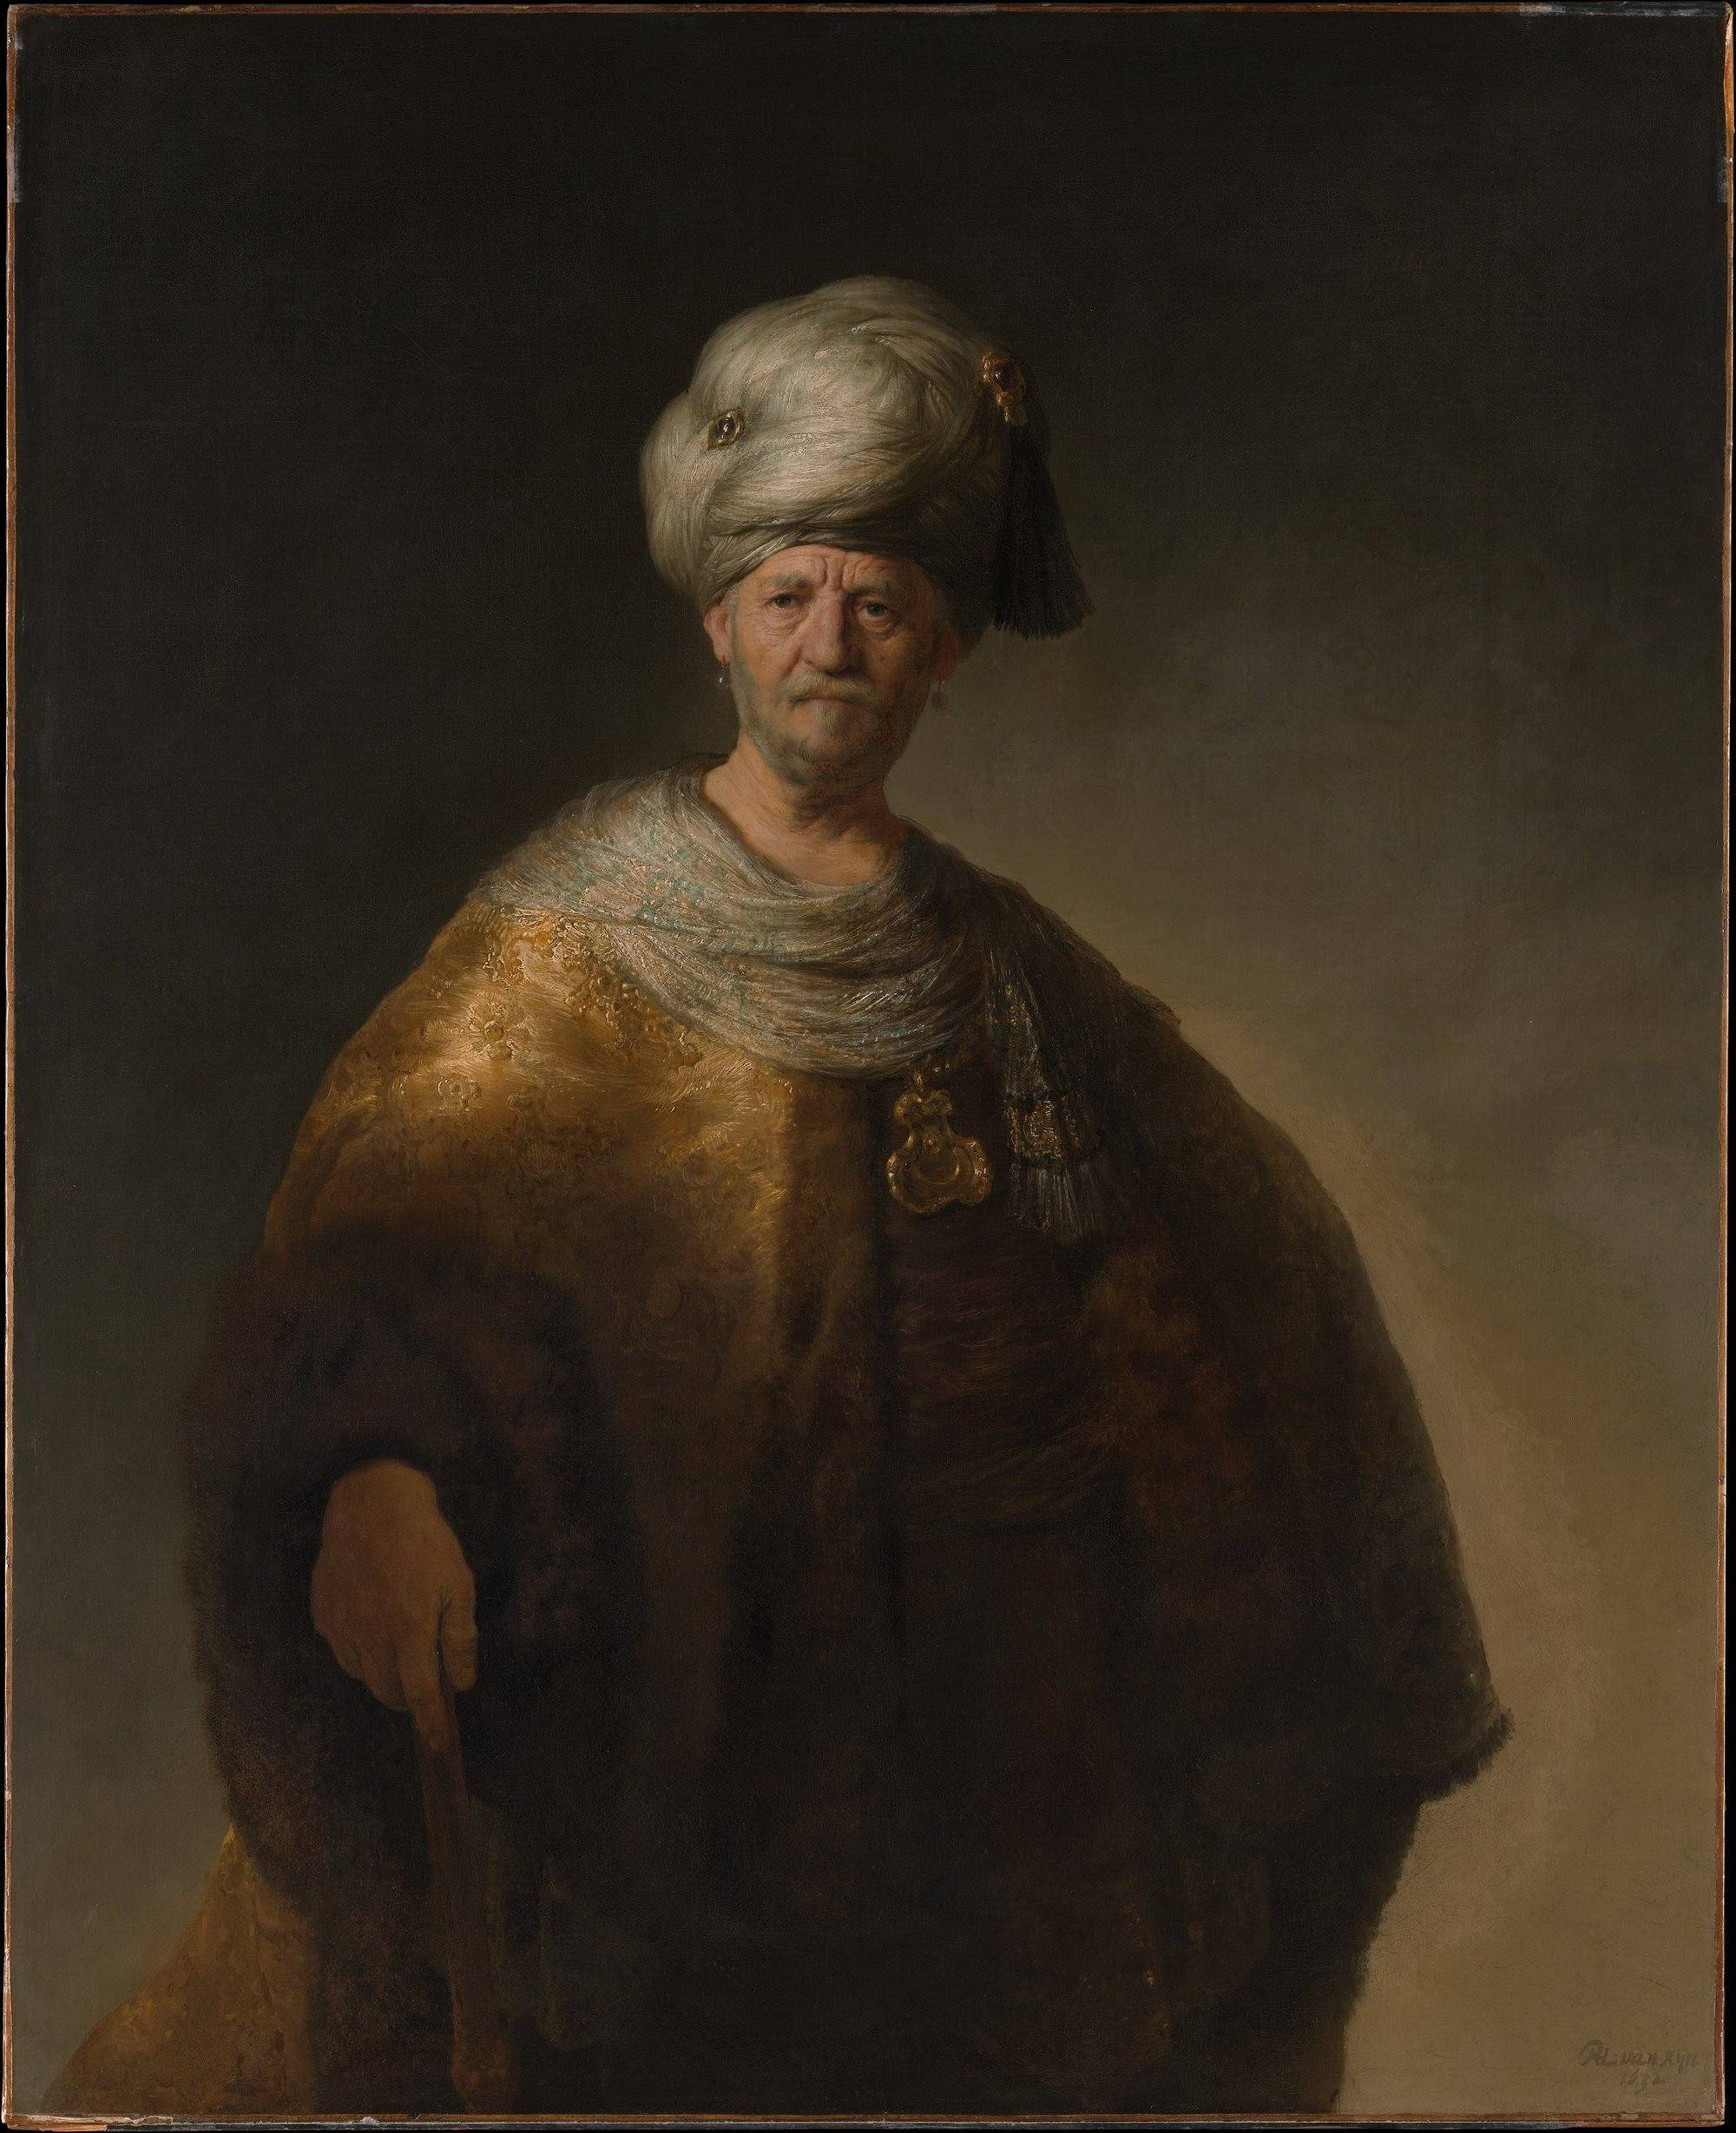 Rembrandt van Rijn, 'Man in Oriental Costume ('The Noble Slav'), 1632. Bequest of William K. Vanderbilt, 1920. Metropolitan Museum of Art, New York